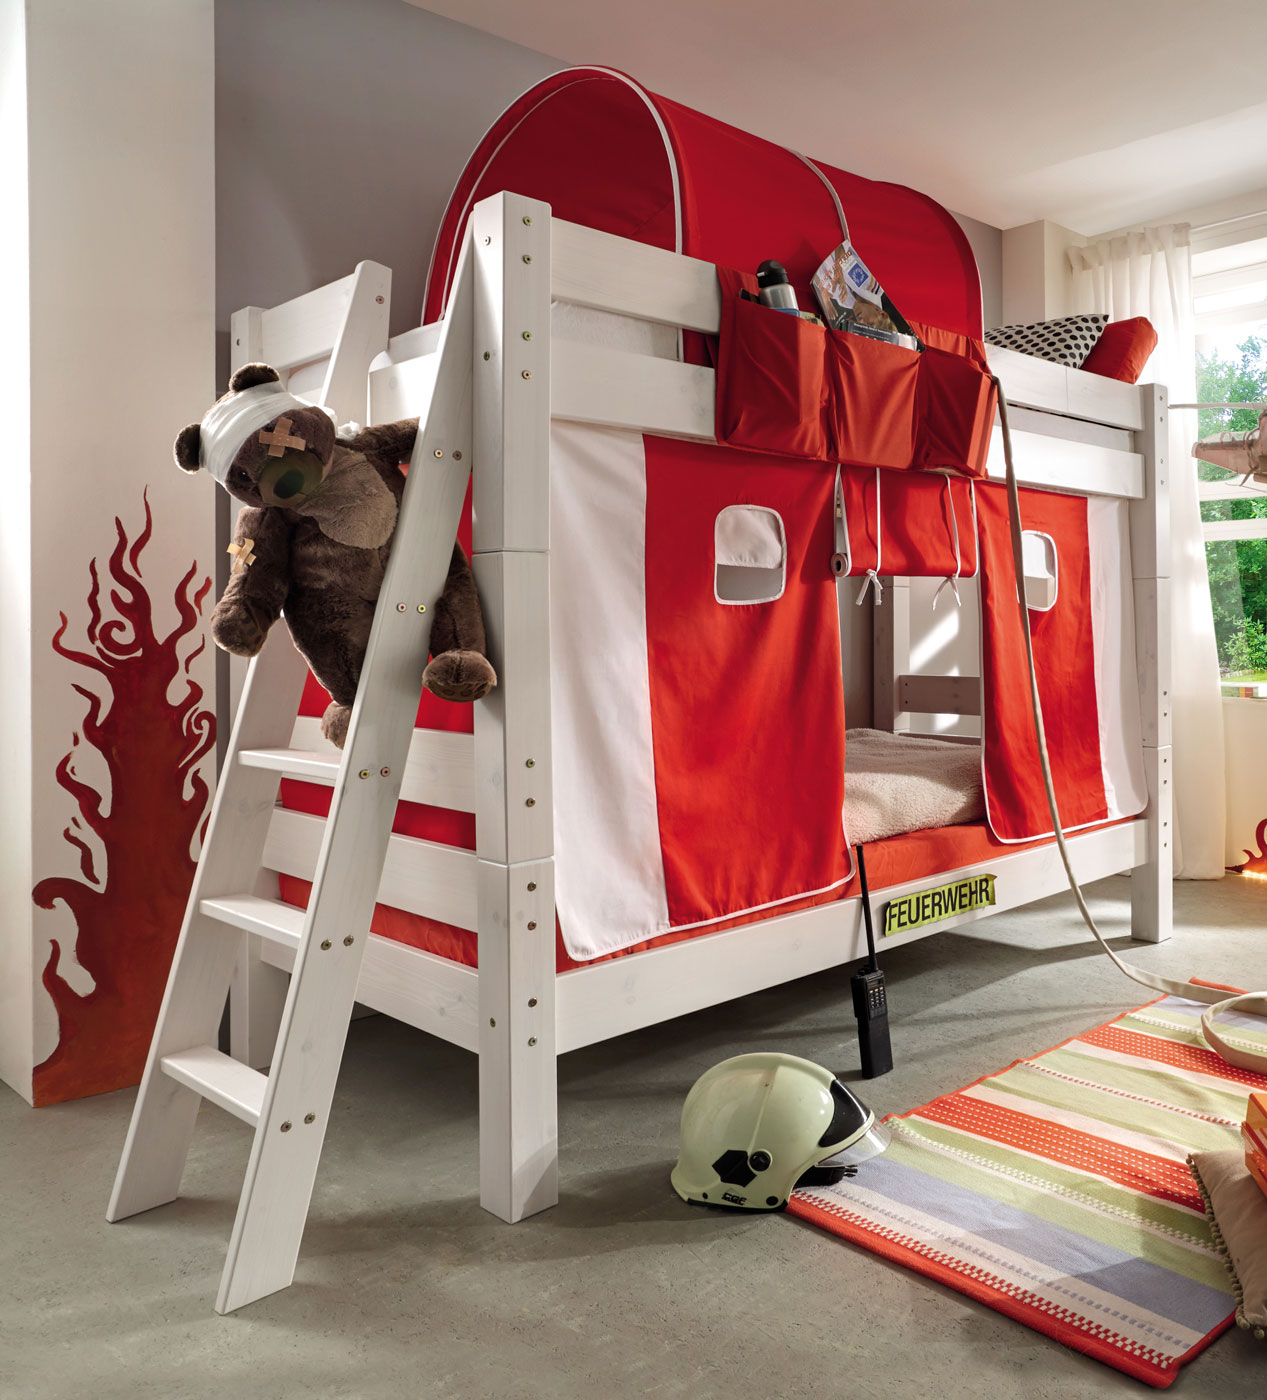 stockbett aus massiver kiefer umbaubar kids dreams. Black Bedroom Furniture Sets. Home Design Ideas